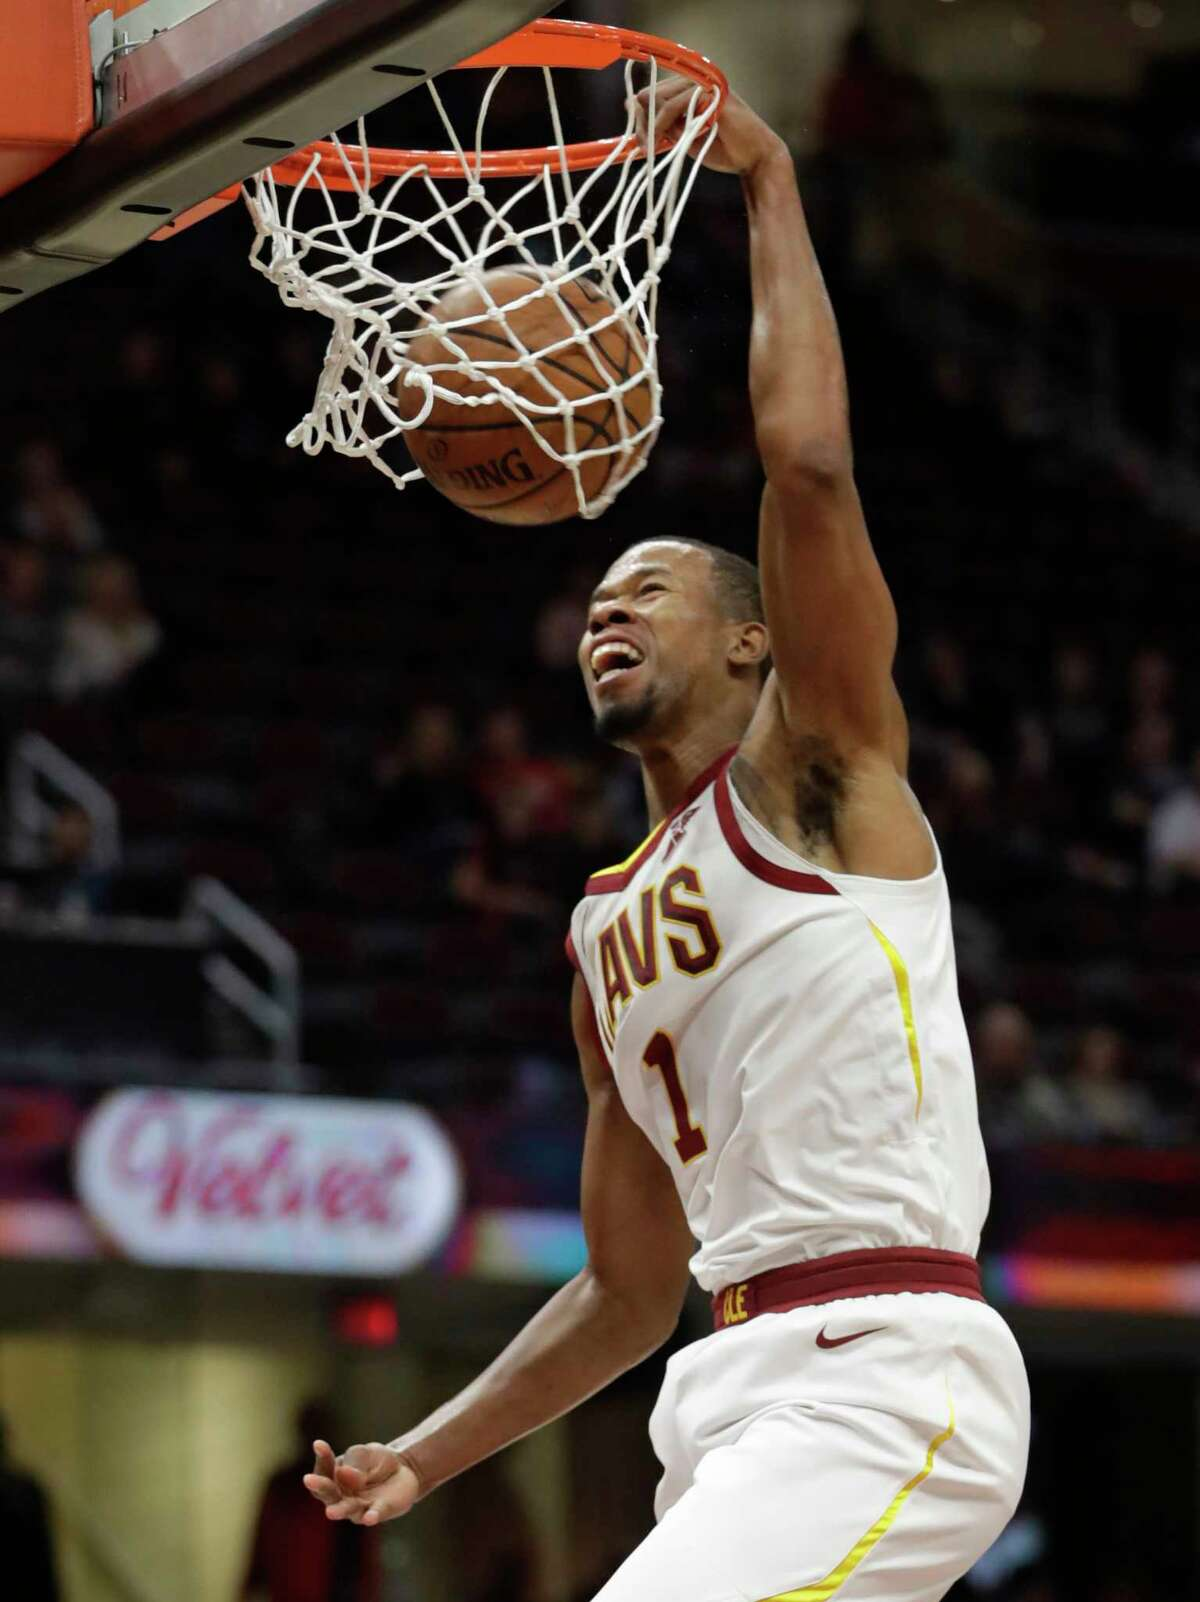 Cleveland Cavaliers' Rodney Hood dunks the ball against the Atlanta Hawks in the first half of an NBA basketball game, Tuesday, Oct. 30, 2018, in Cleveland. (AP Photo/Tony Dejak)